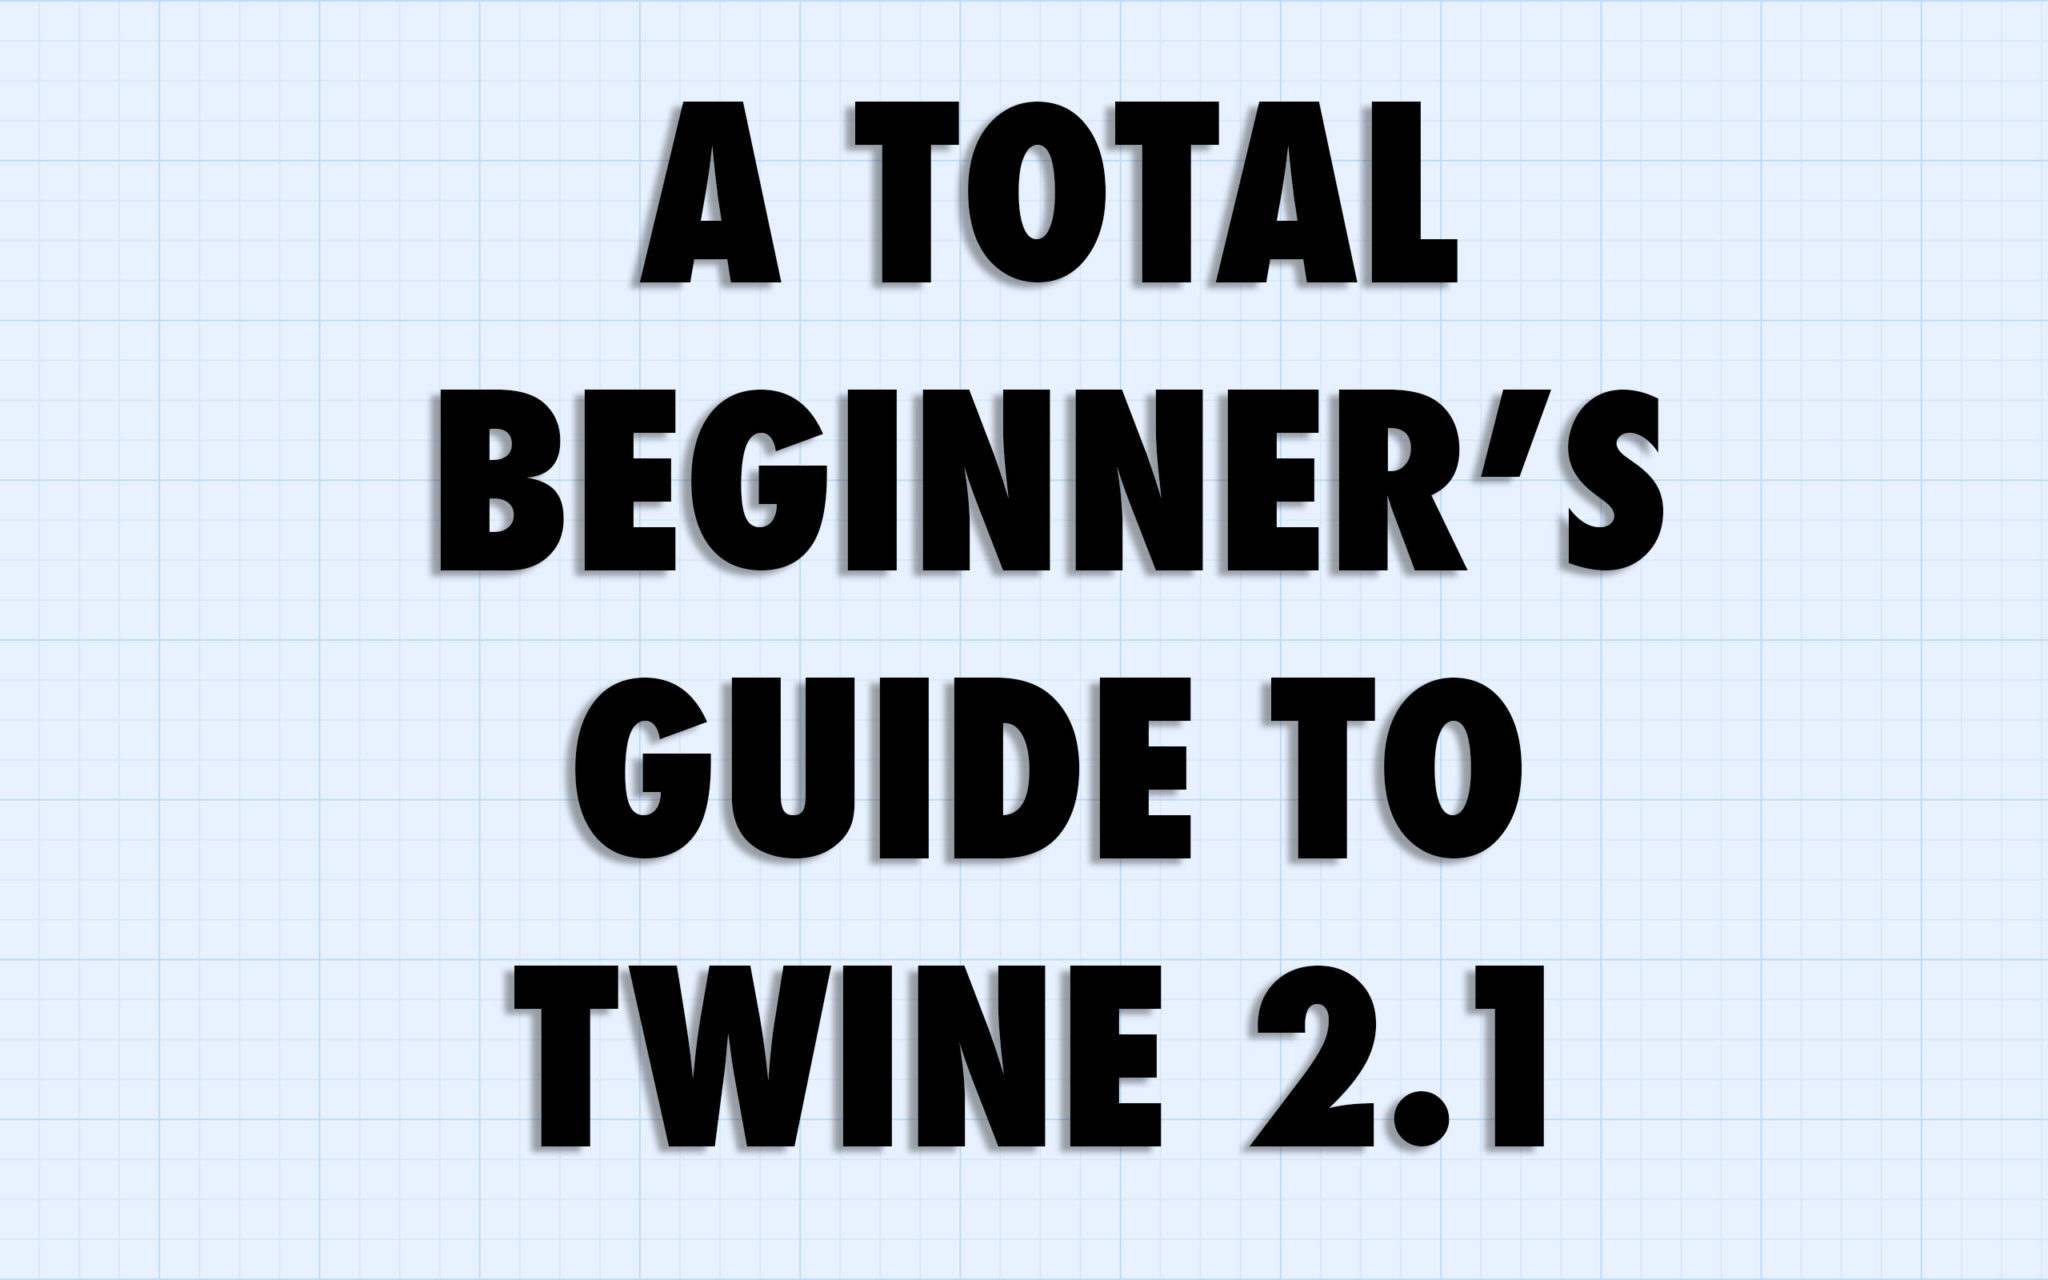 A Total Beginner's Guide to Twine 2 1 | Adam Hammond